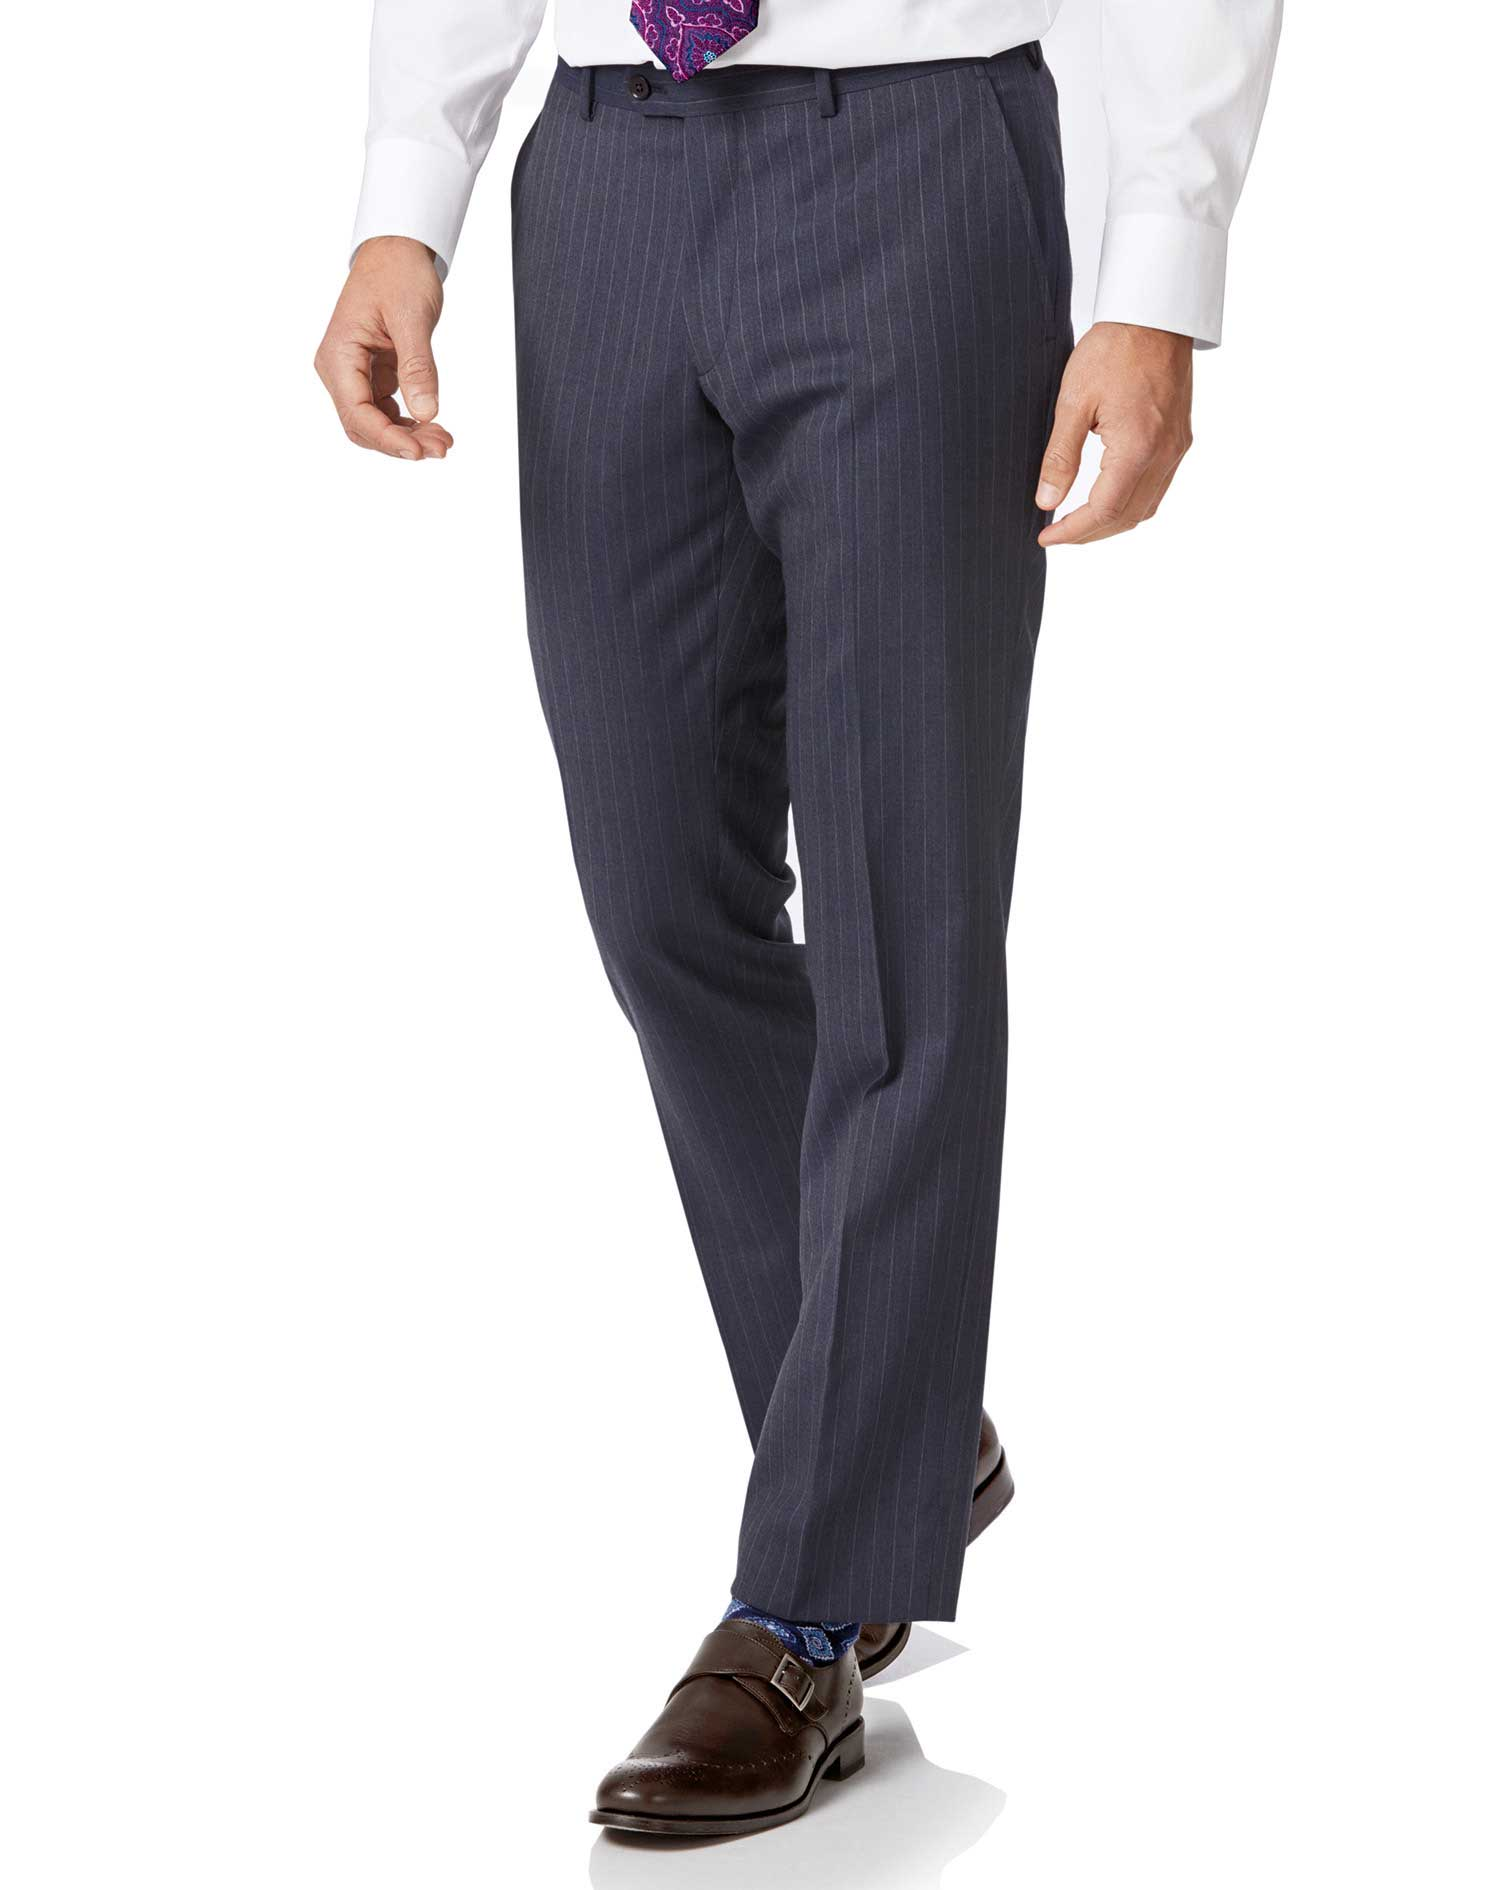 Airforce Stripe Slim Fit Panama Business Suit Trouser Size W32 L34 by Charles Tyrwhitt